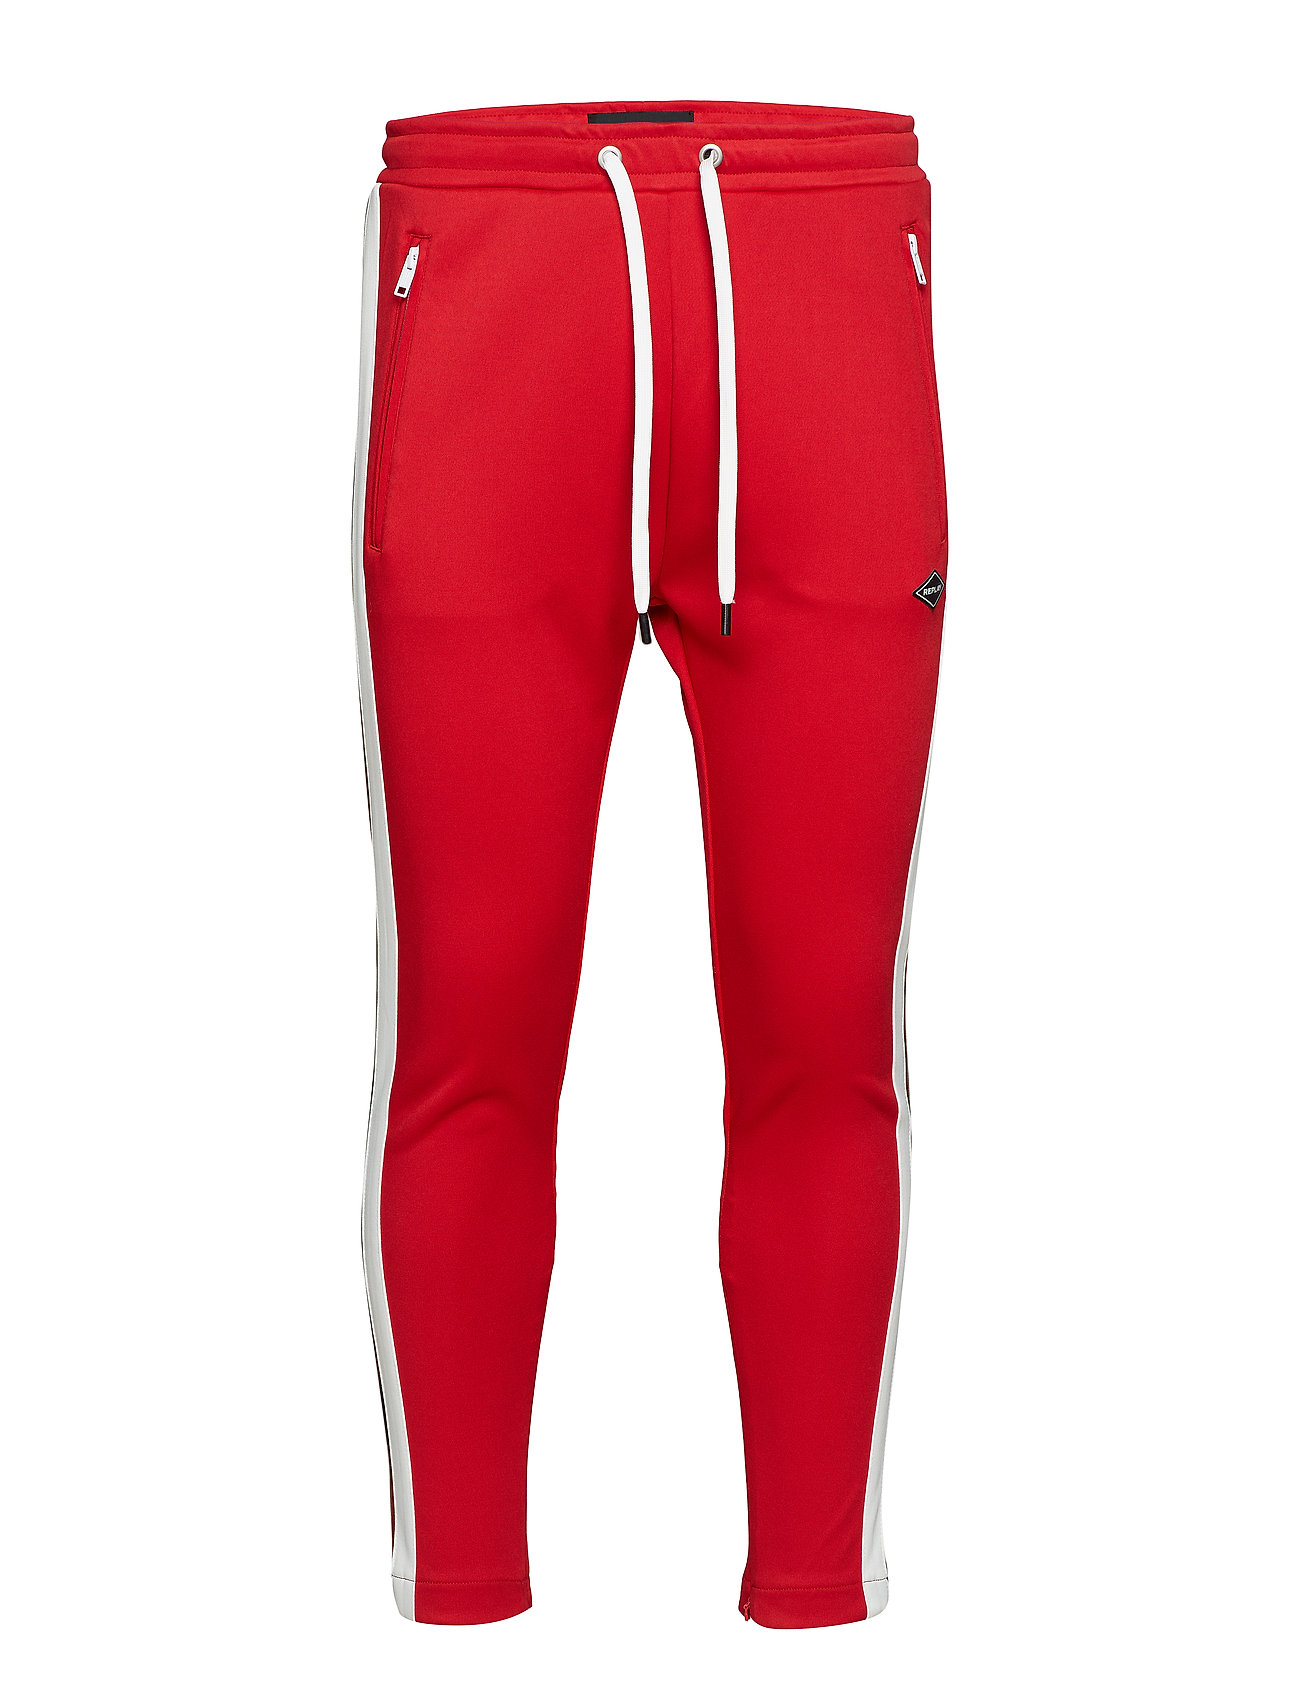 Replay Pants - RUBY RED